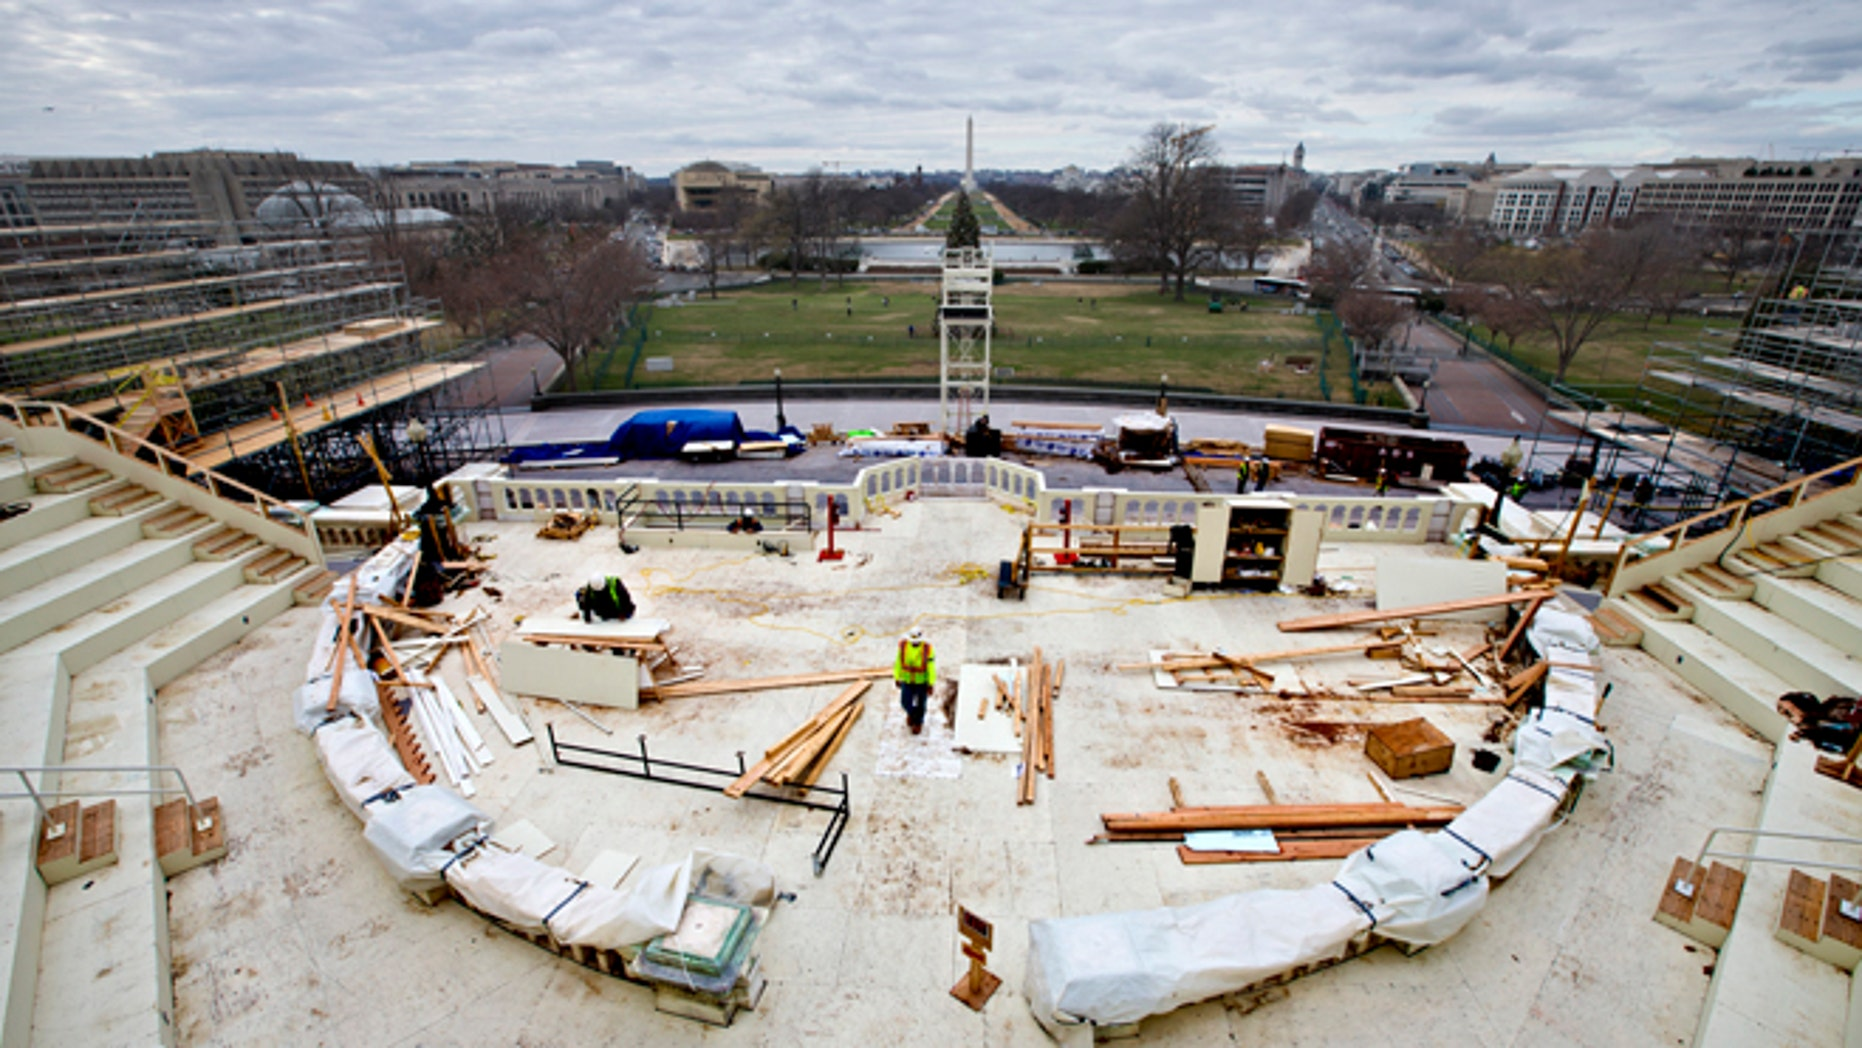 Big Price For Inaugural Pomp Much Private Money Fox News